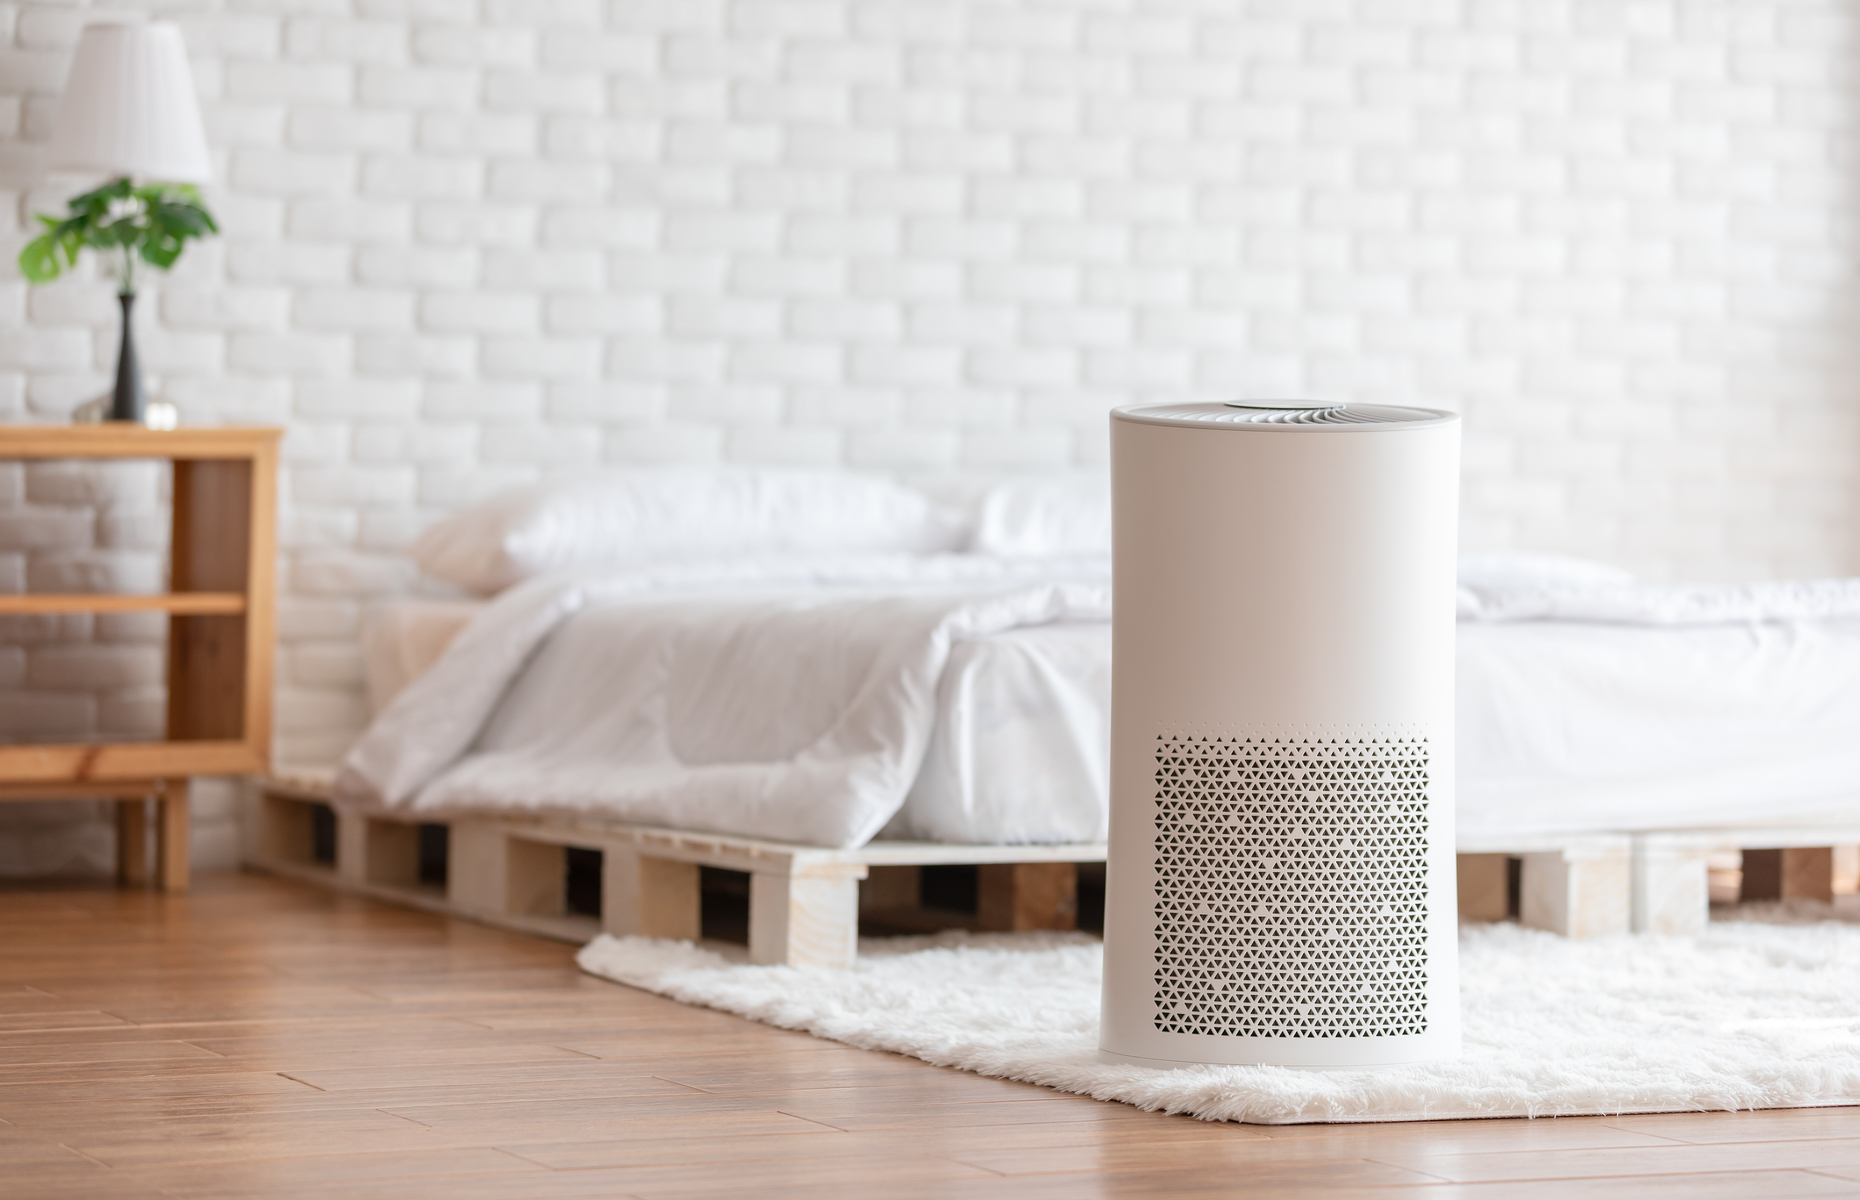 Air purifiers can increase household air quality and ease allergy symptoms. Image: Yuttana Jaowattana / Shutterstock